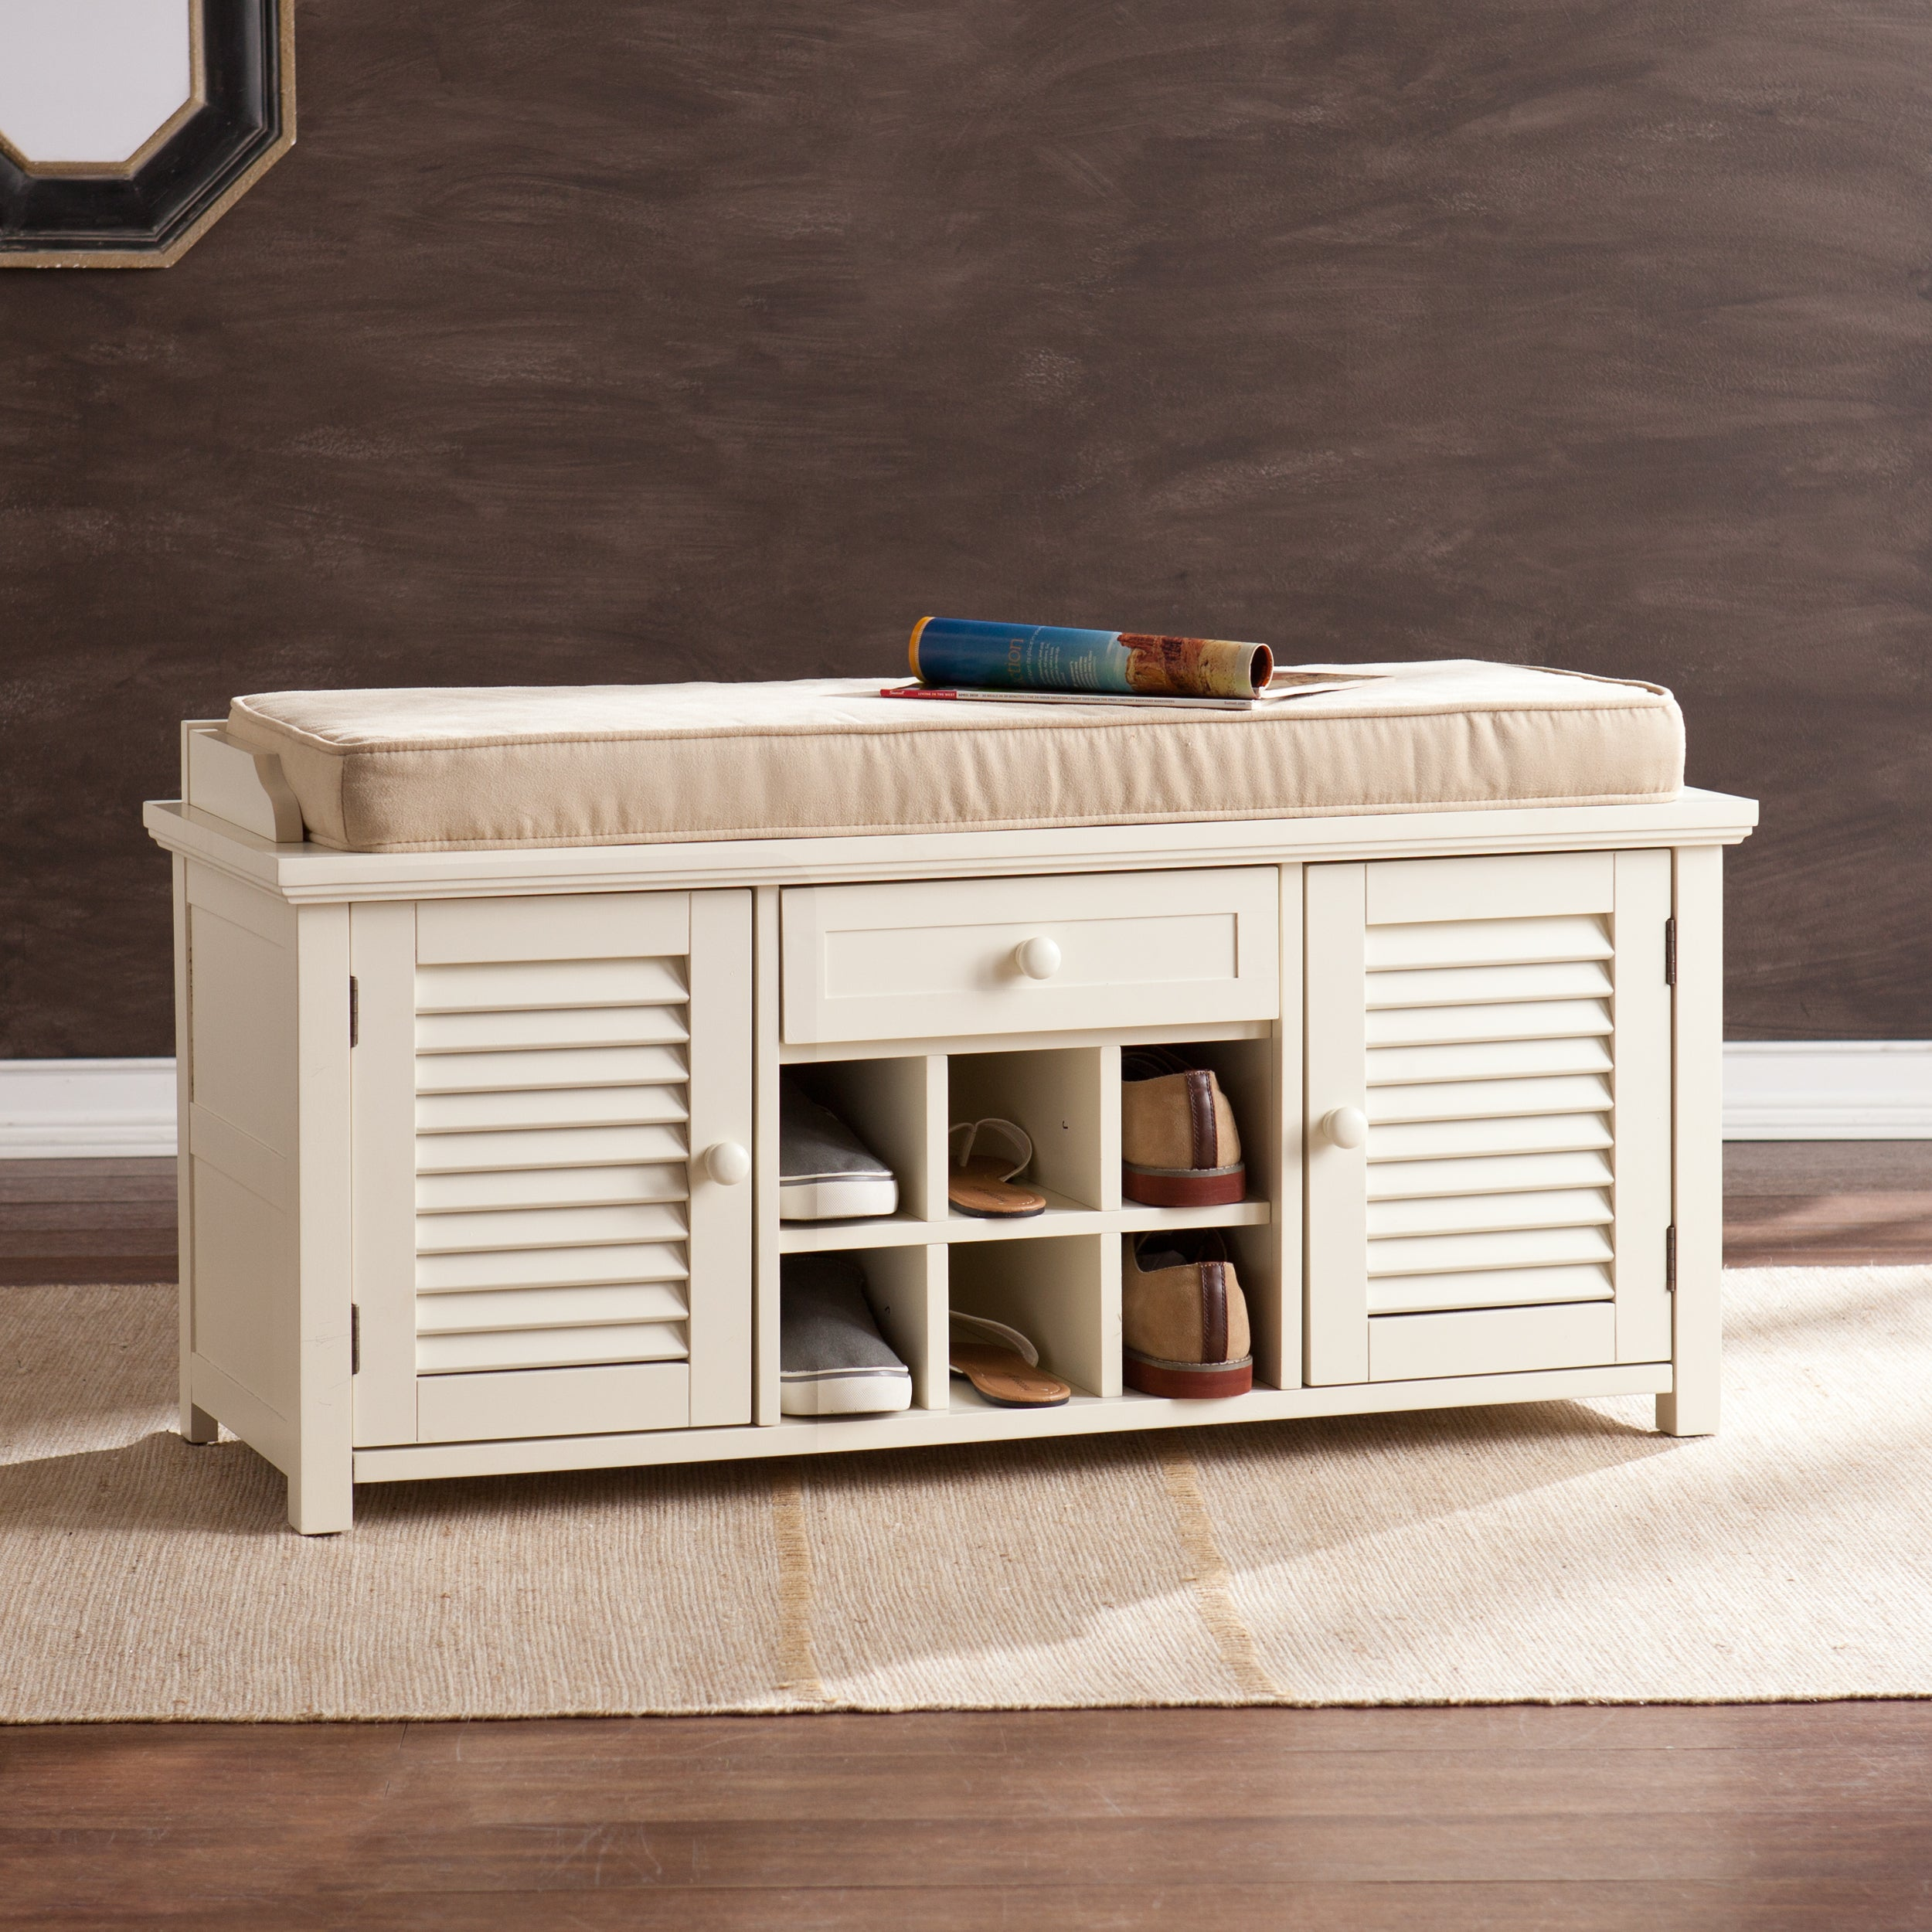 Shop Harper Blvd Aldon Antique White Shoe Storage Bench   On Sale   Free  Shipping Today   Overstock.com   10596618